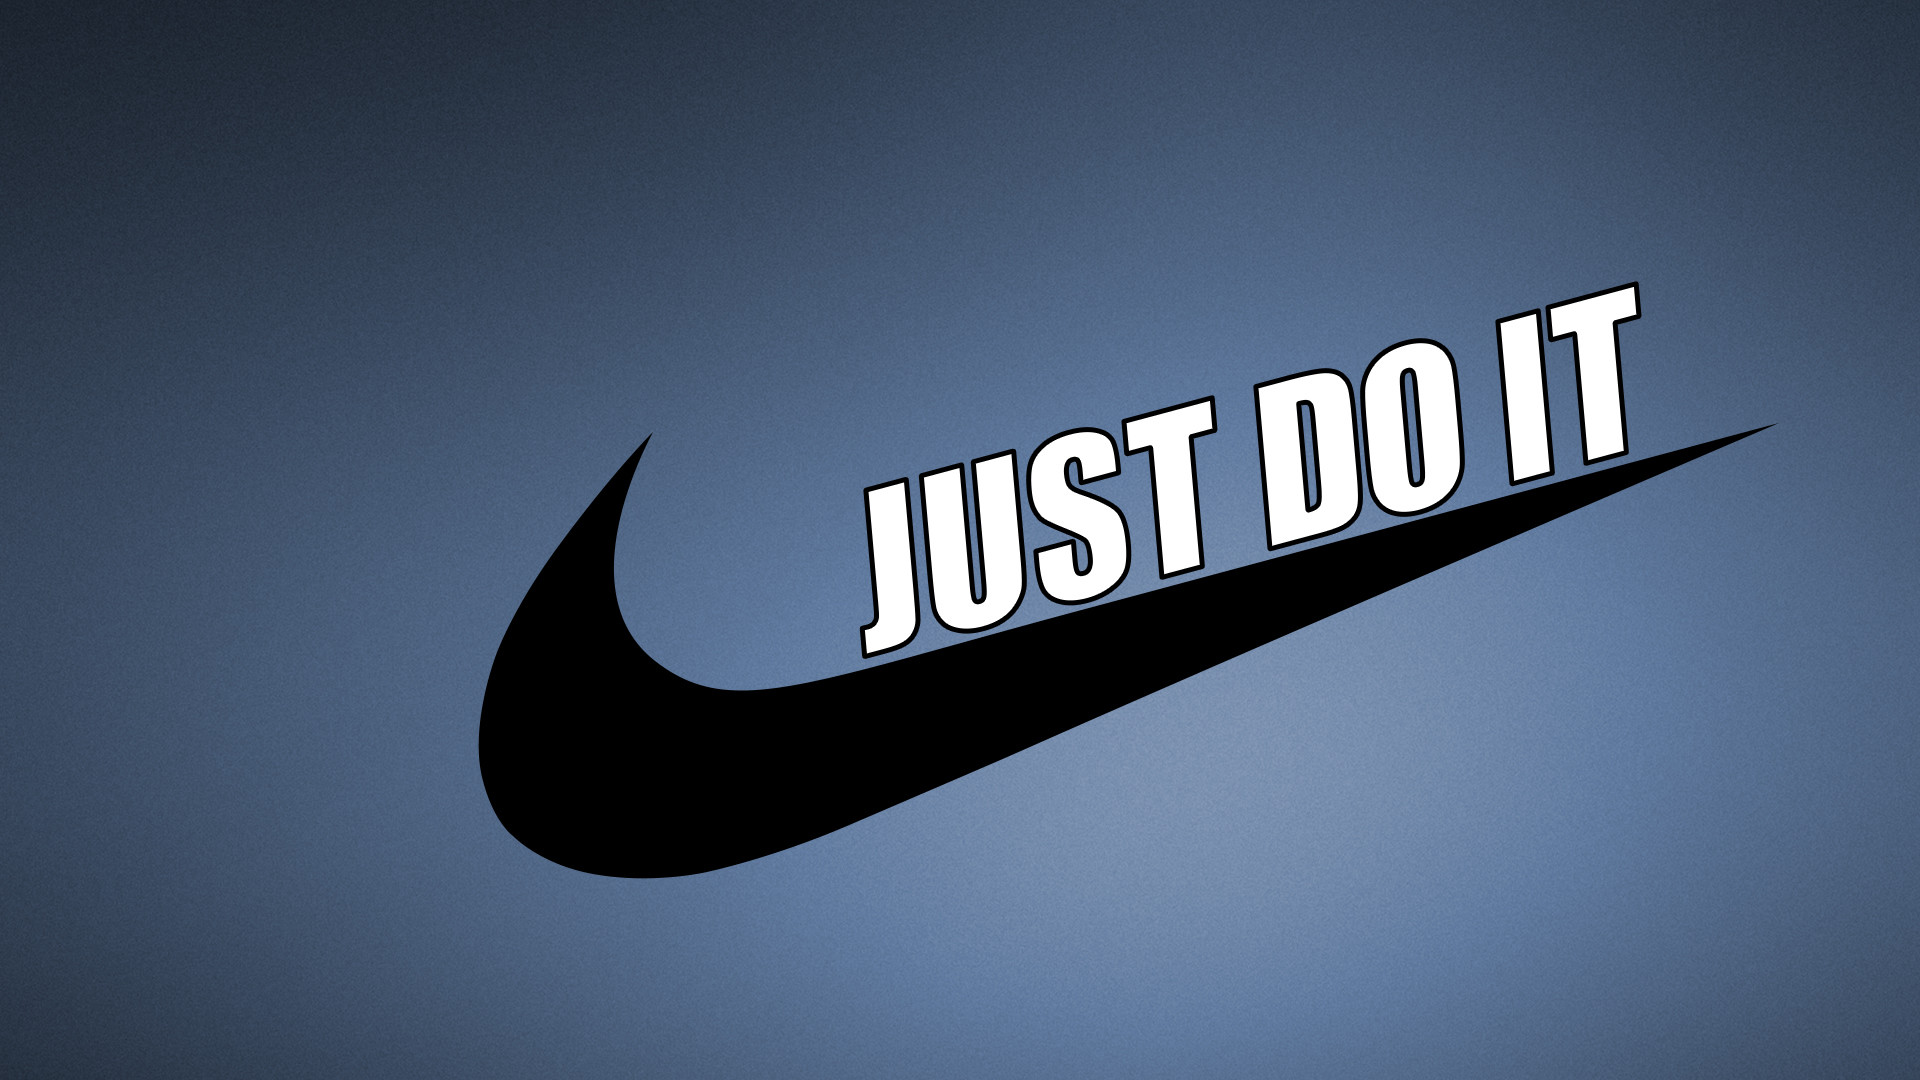 #16542, High Resolution Wallpapers = nike logo backround | ololoshka |  Pinterest | Nike logo and High resolution wallpapers